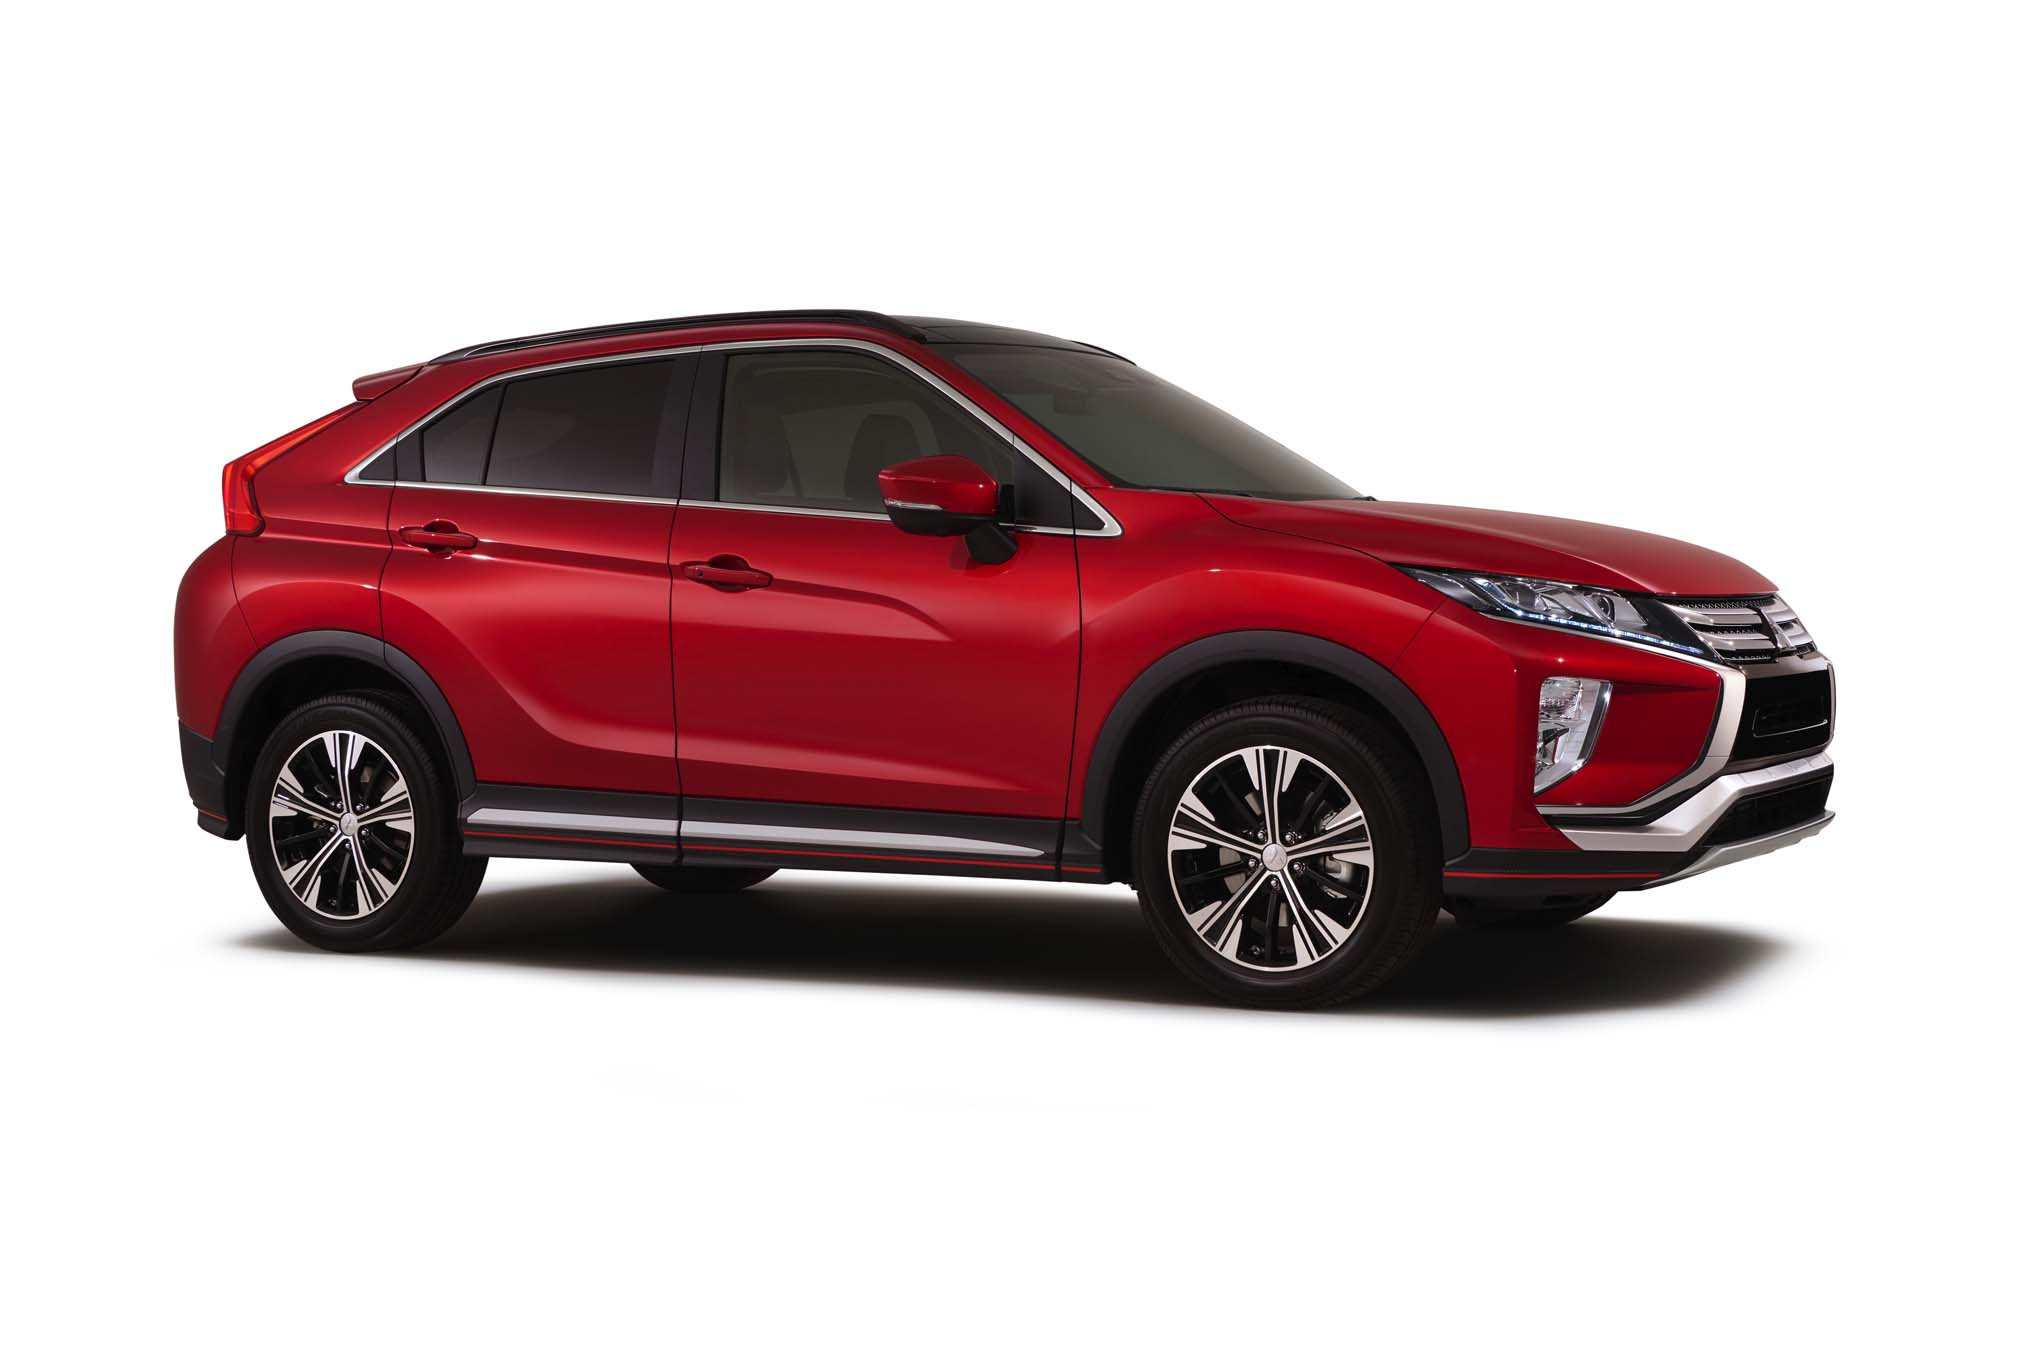 2018-Mitsubishi-Eclipse-Cross-front-side